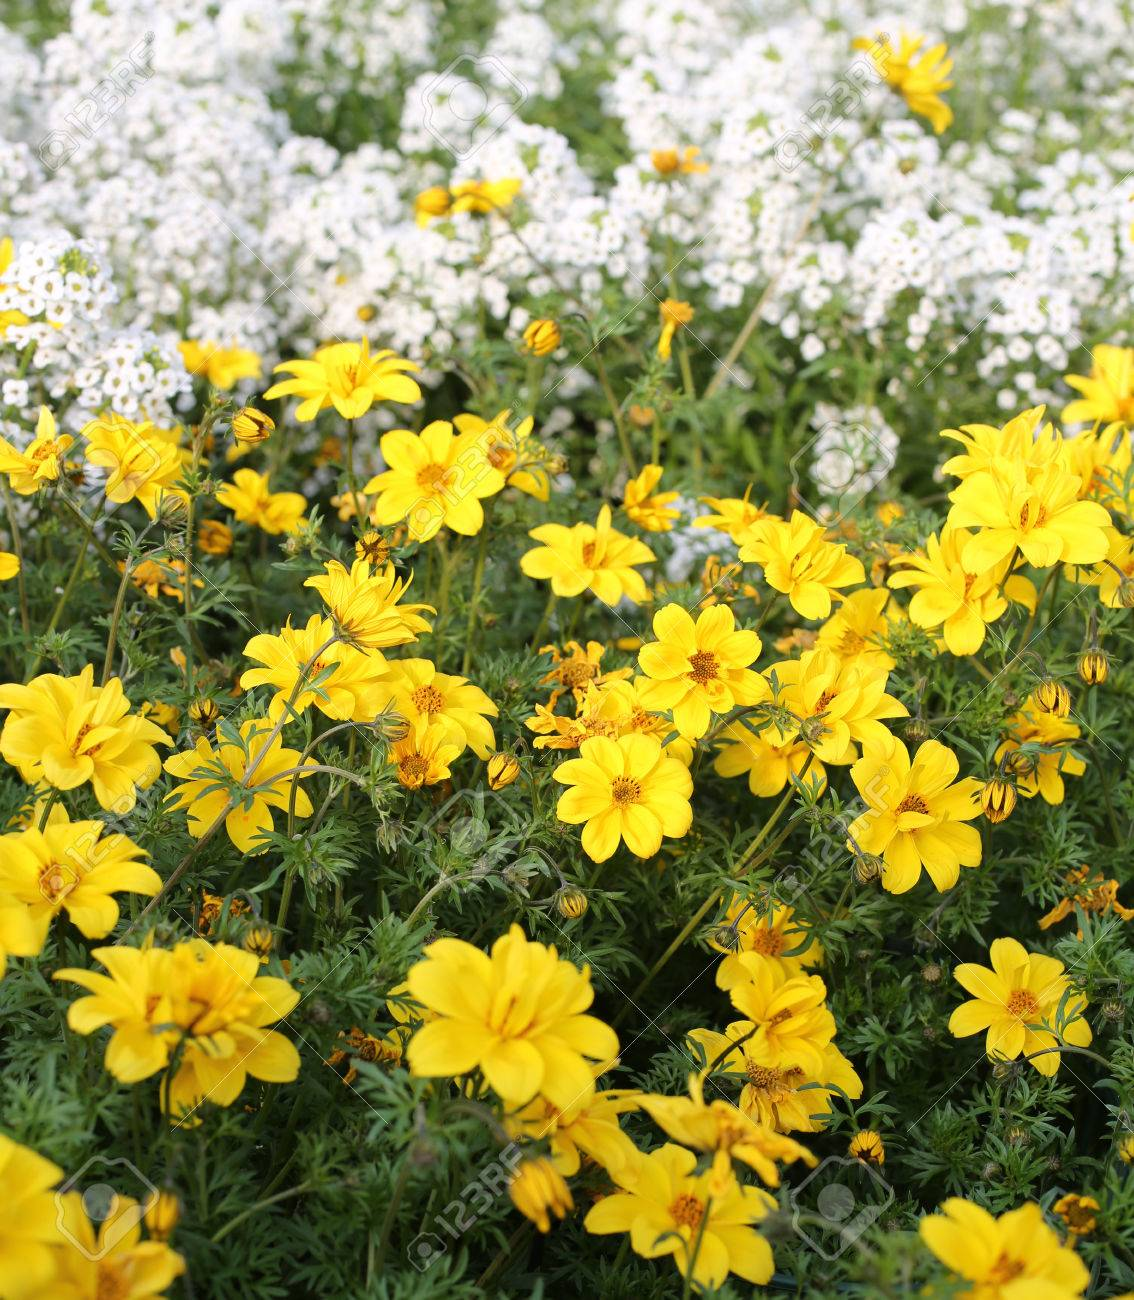 Large field of yellow flowers called bidens in spring large field of yellow flowers called bidens in spring stock photo 40134297 mightylinksfo